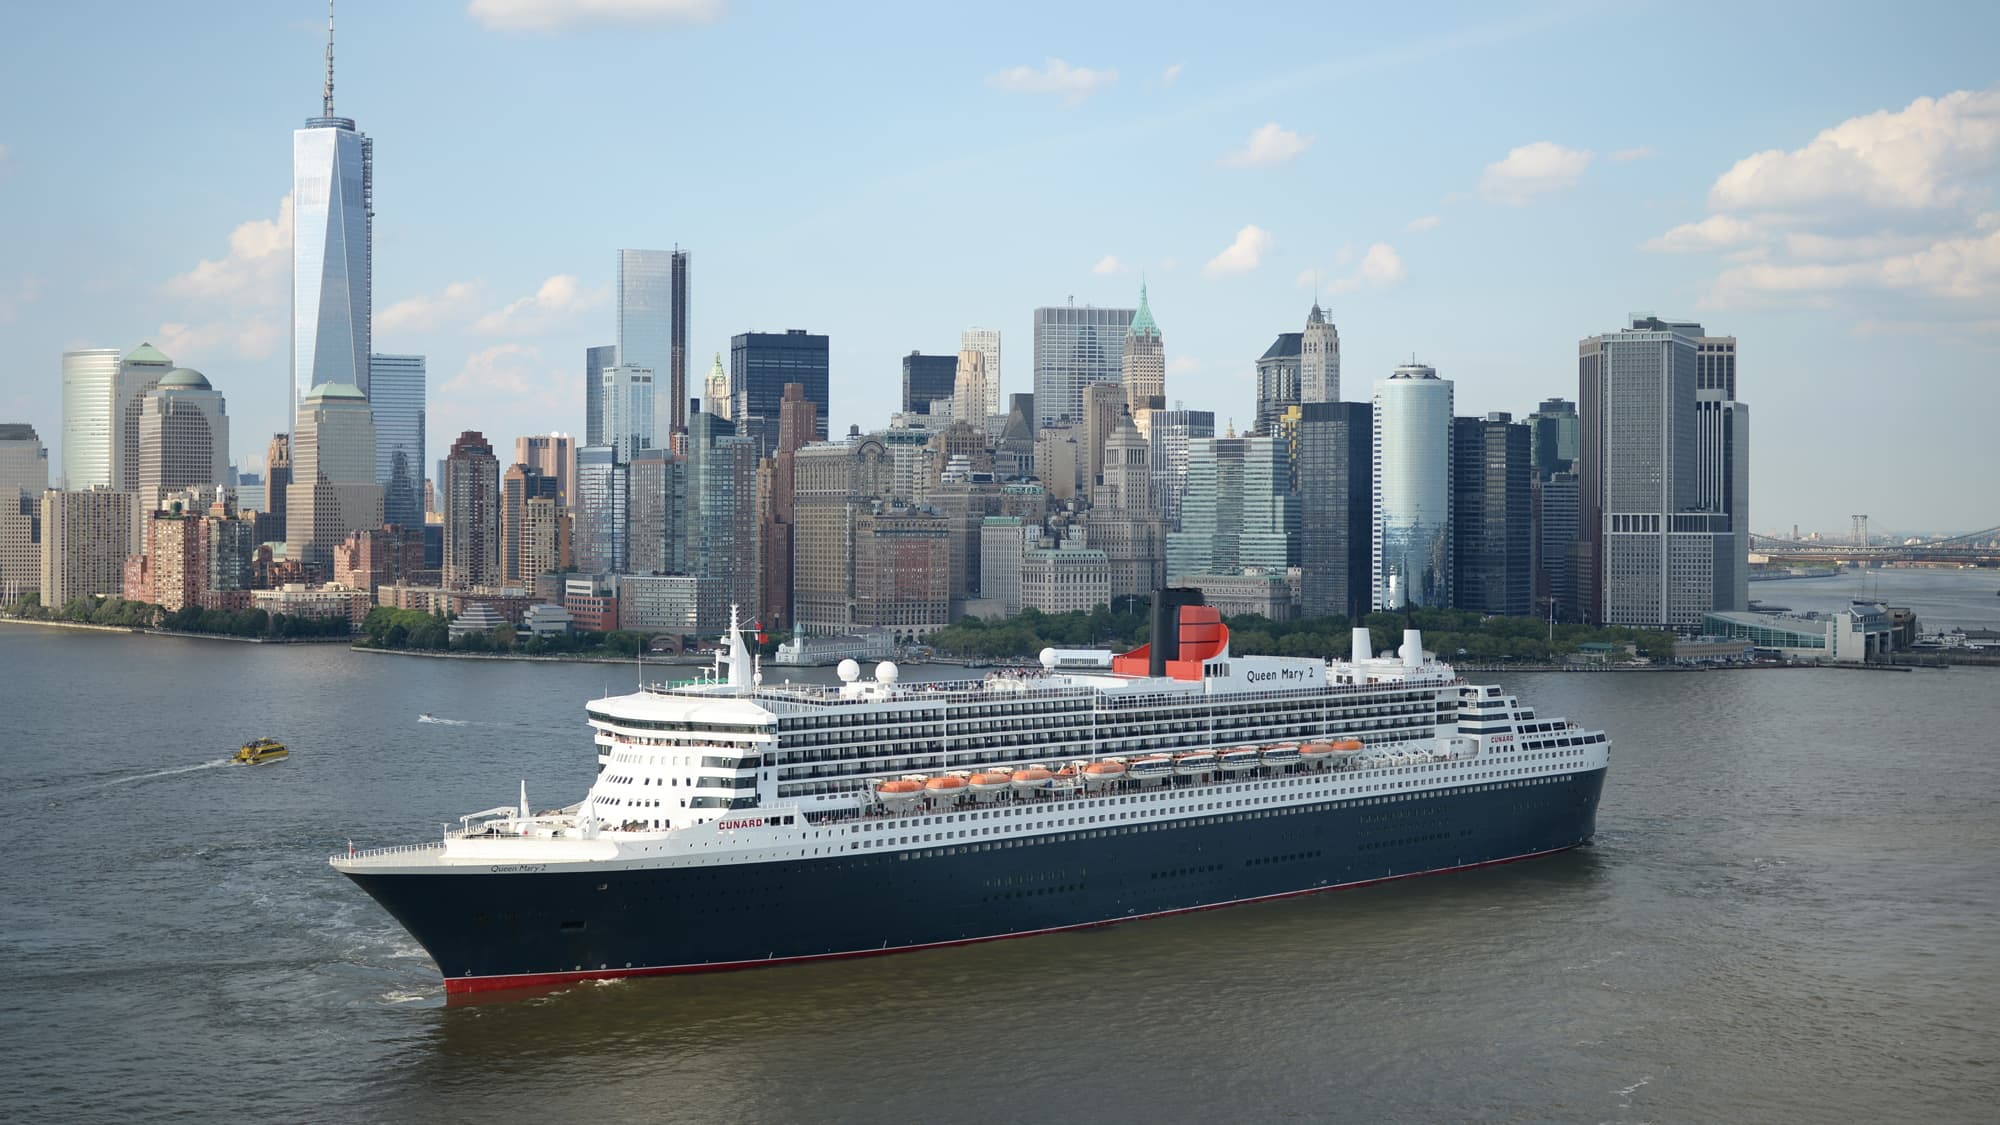 Queen Mary 2 Fastest Ocean Liner Turns 10